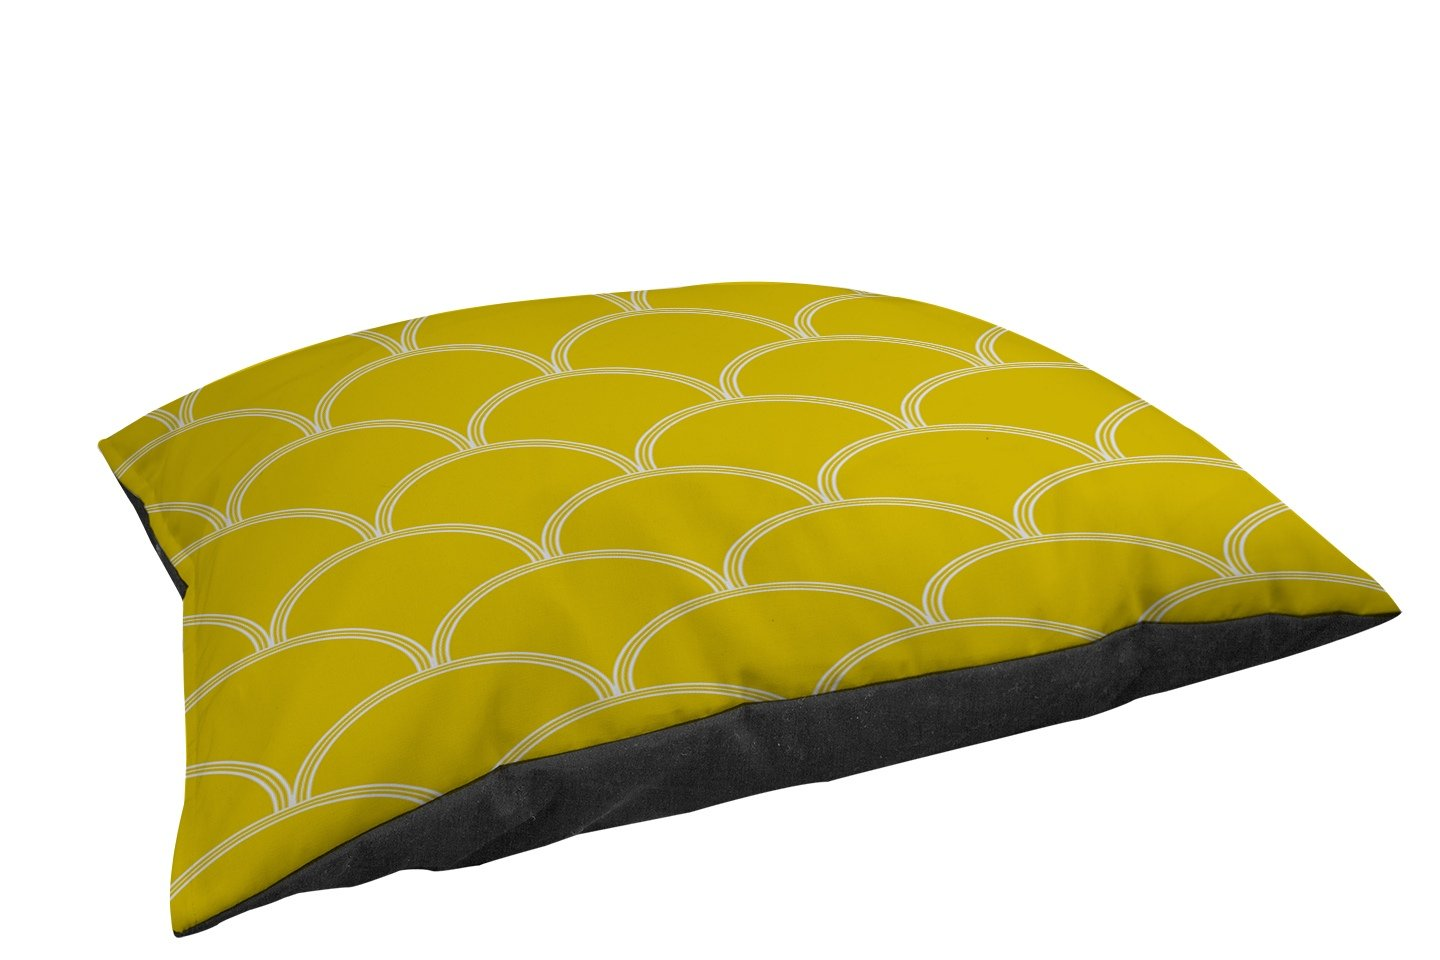 Manual Woodworkers & Weavers Fleece Top Toy or Small Breed Pet Bed, Art Deco Circles Yellow and White